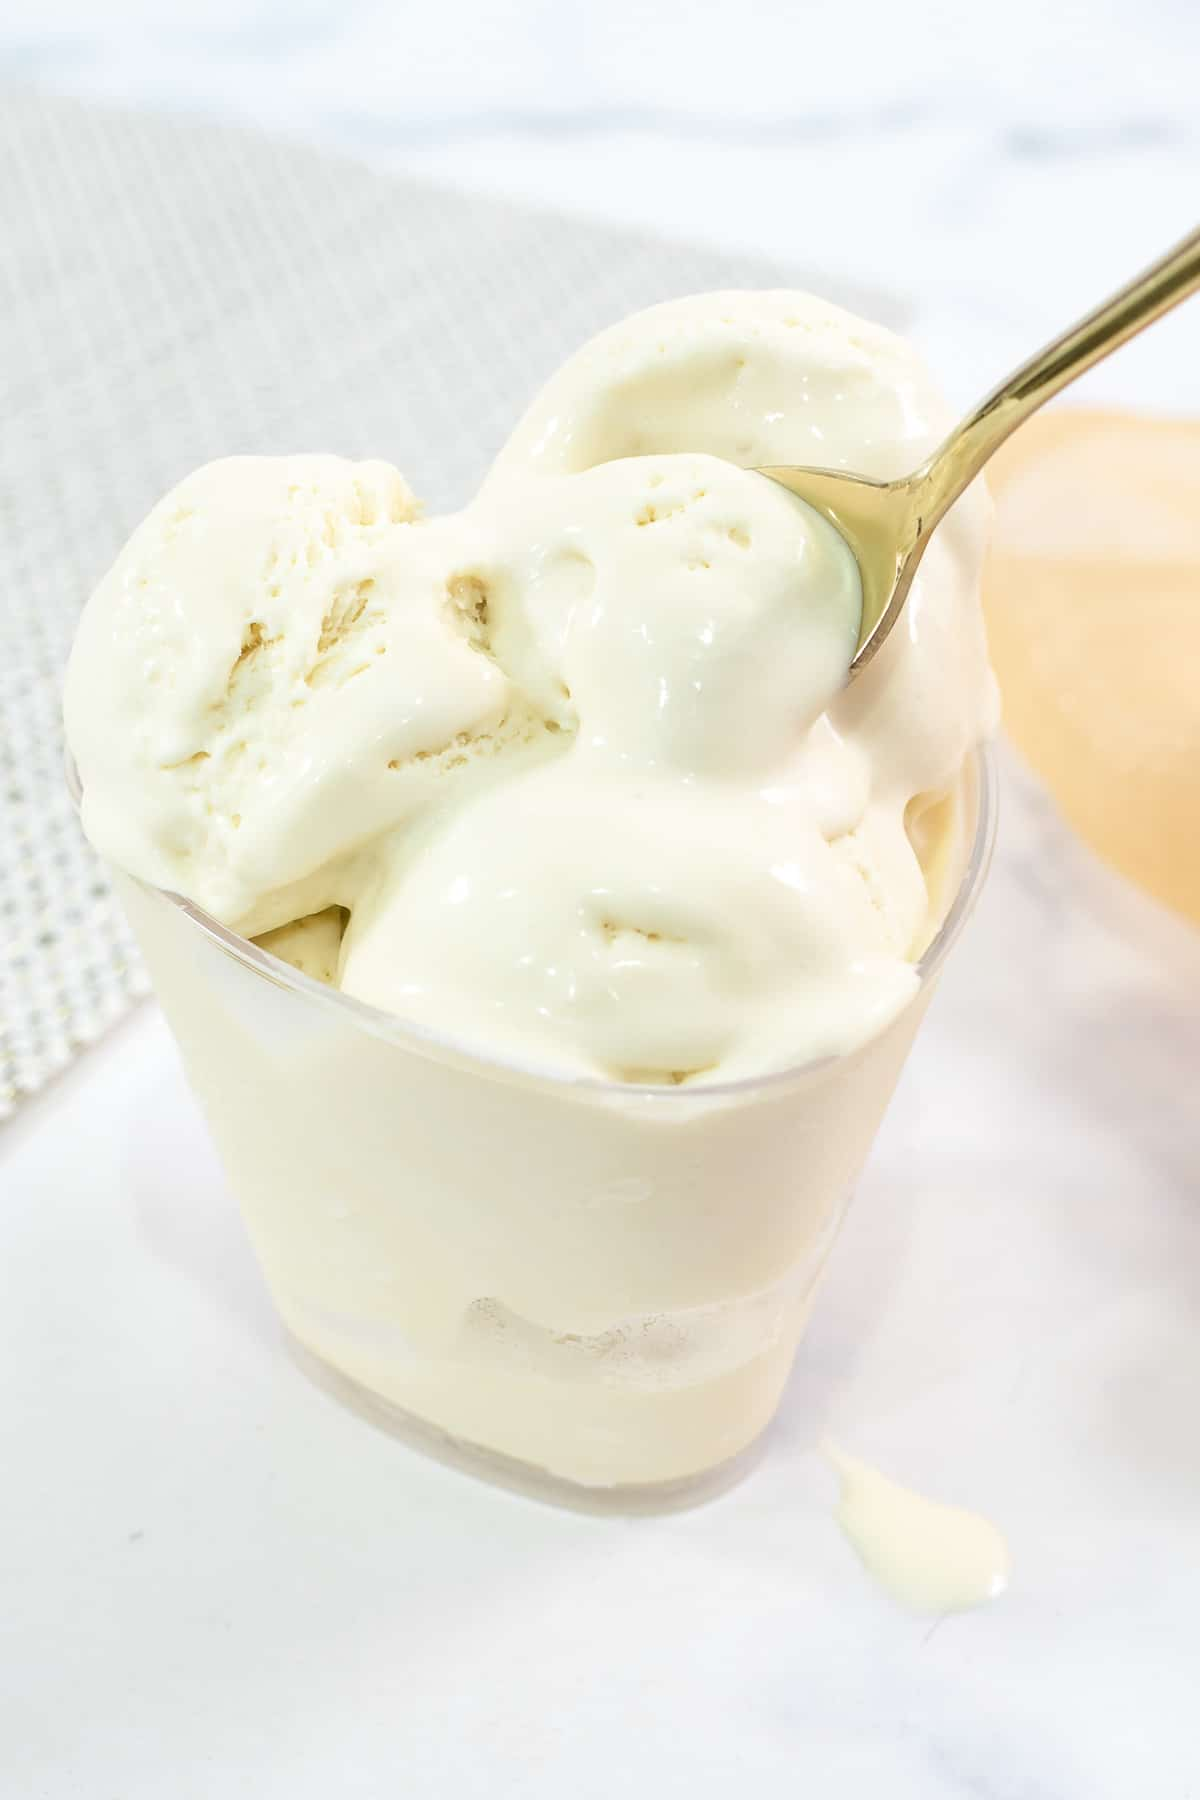 Using a gold spoon to scoop ice cream from a dessert cup